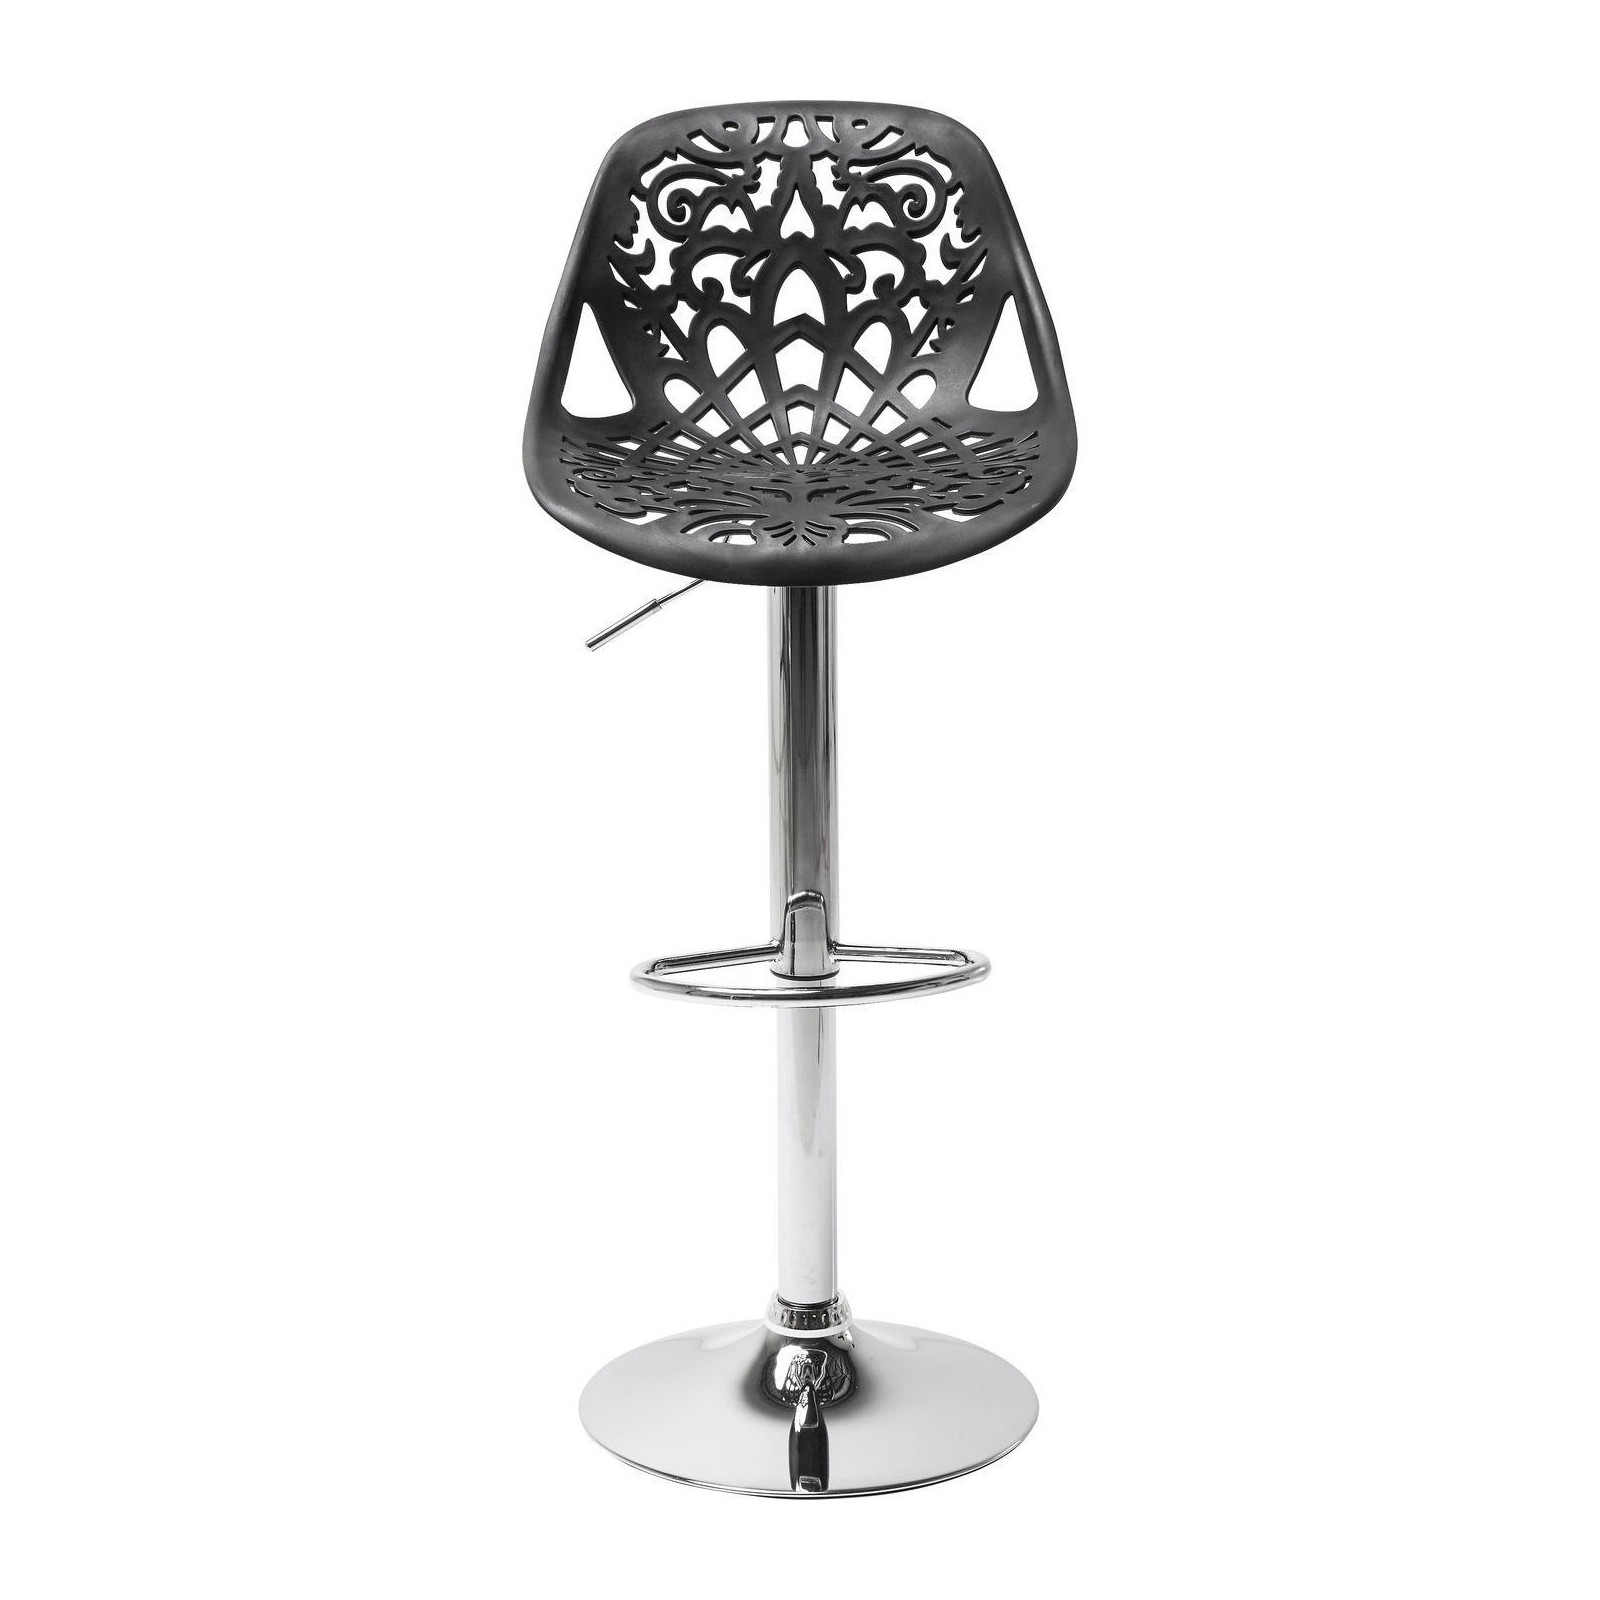 Tabouret de bar contemporain noir ornament kare design for Siege de bar design